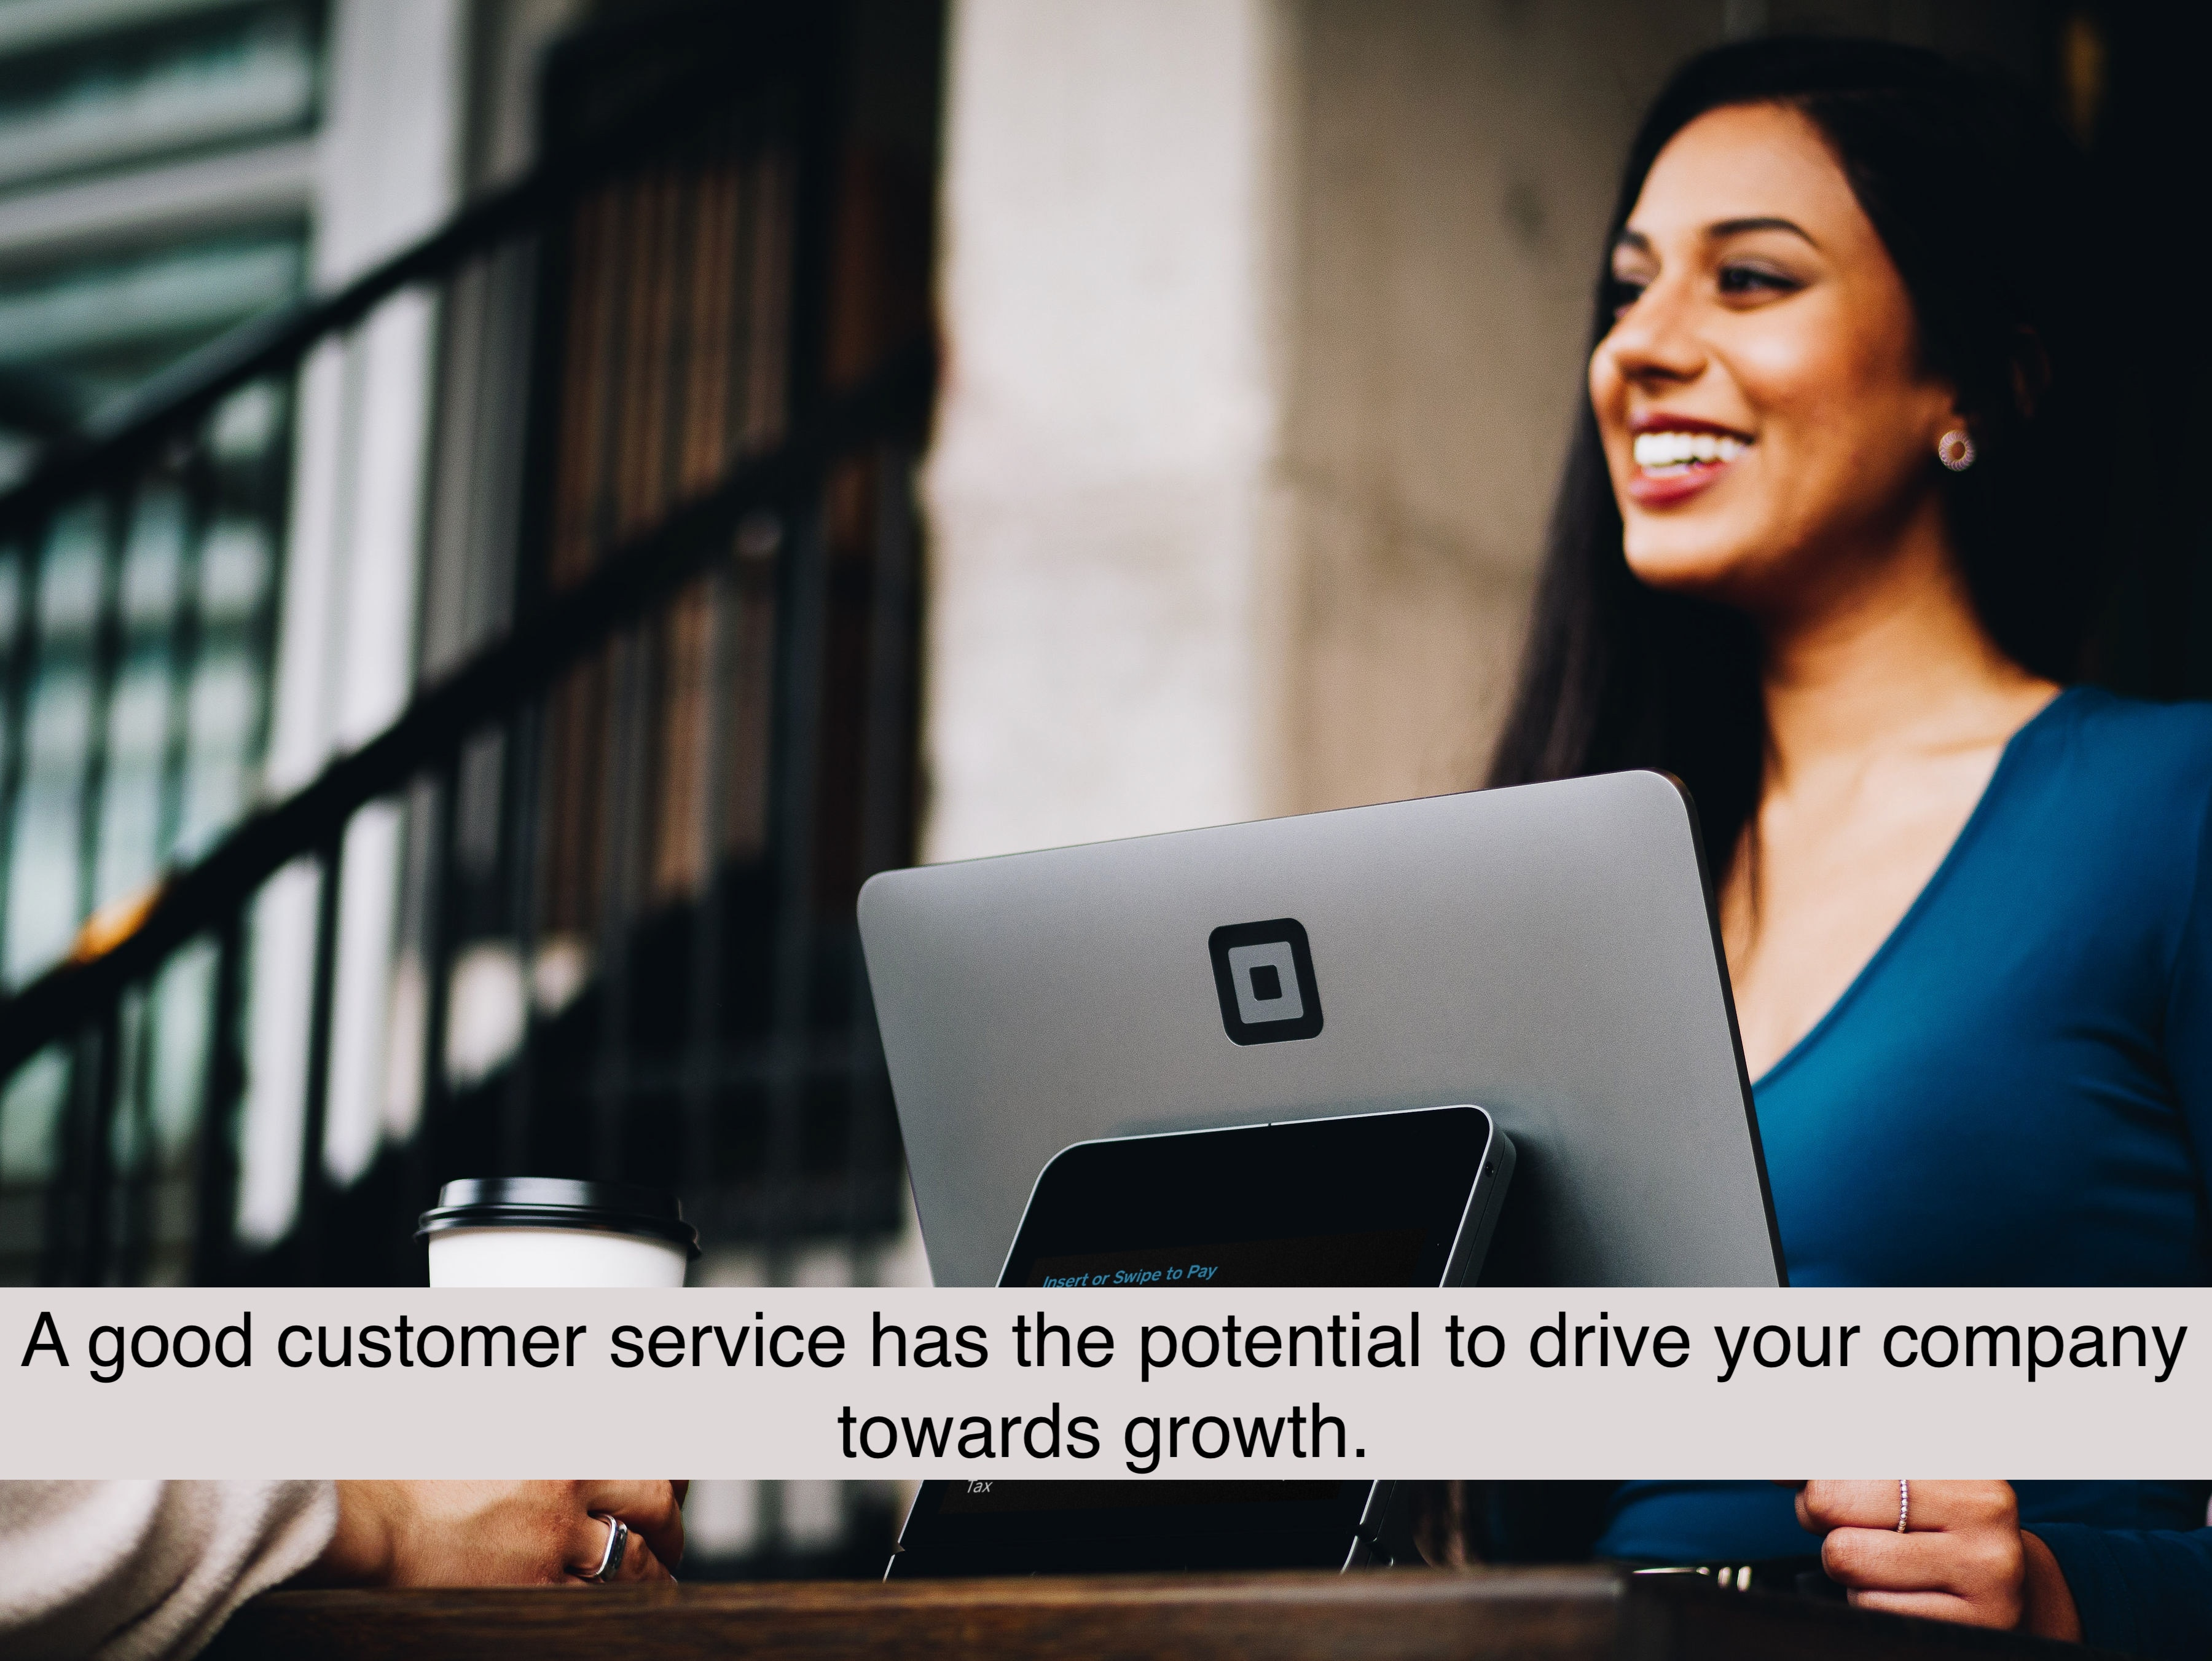 A good customer service has the potential to drive your company towards growth.